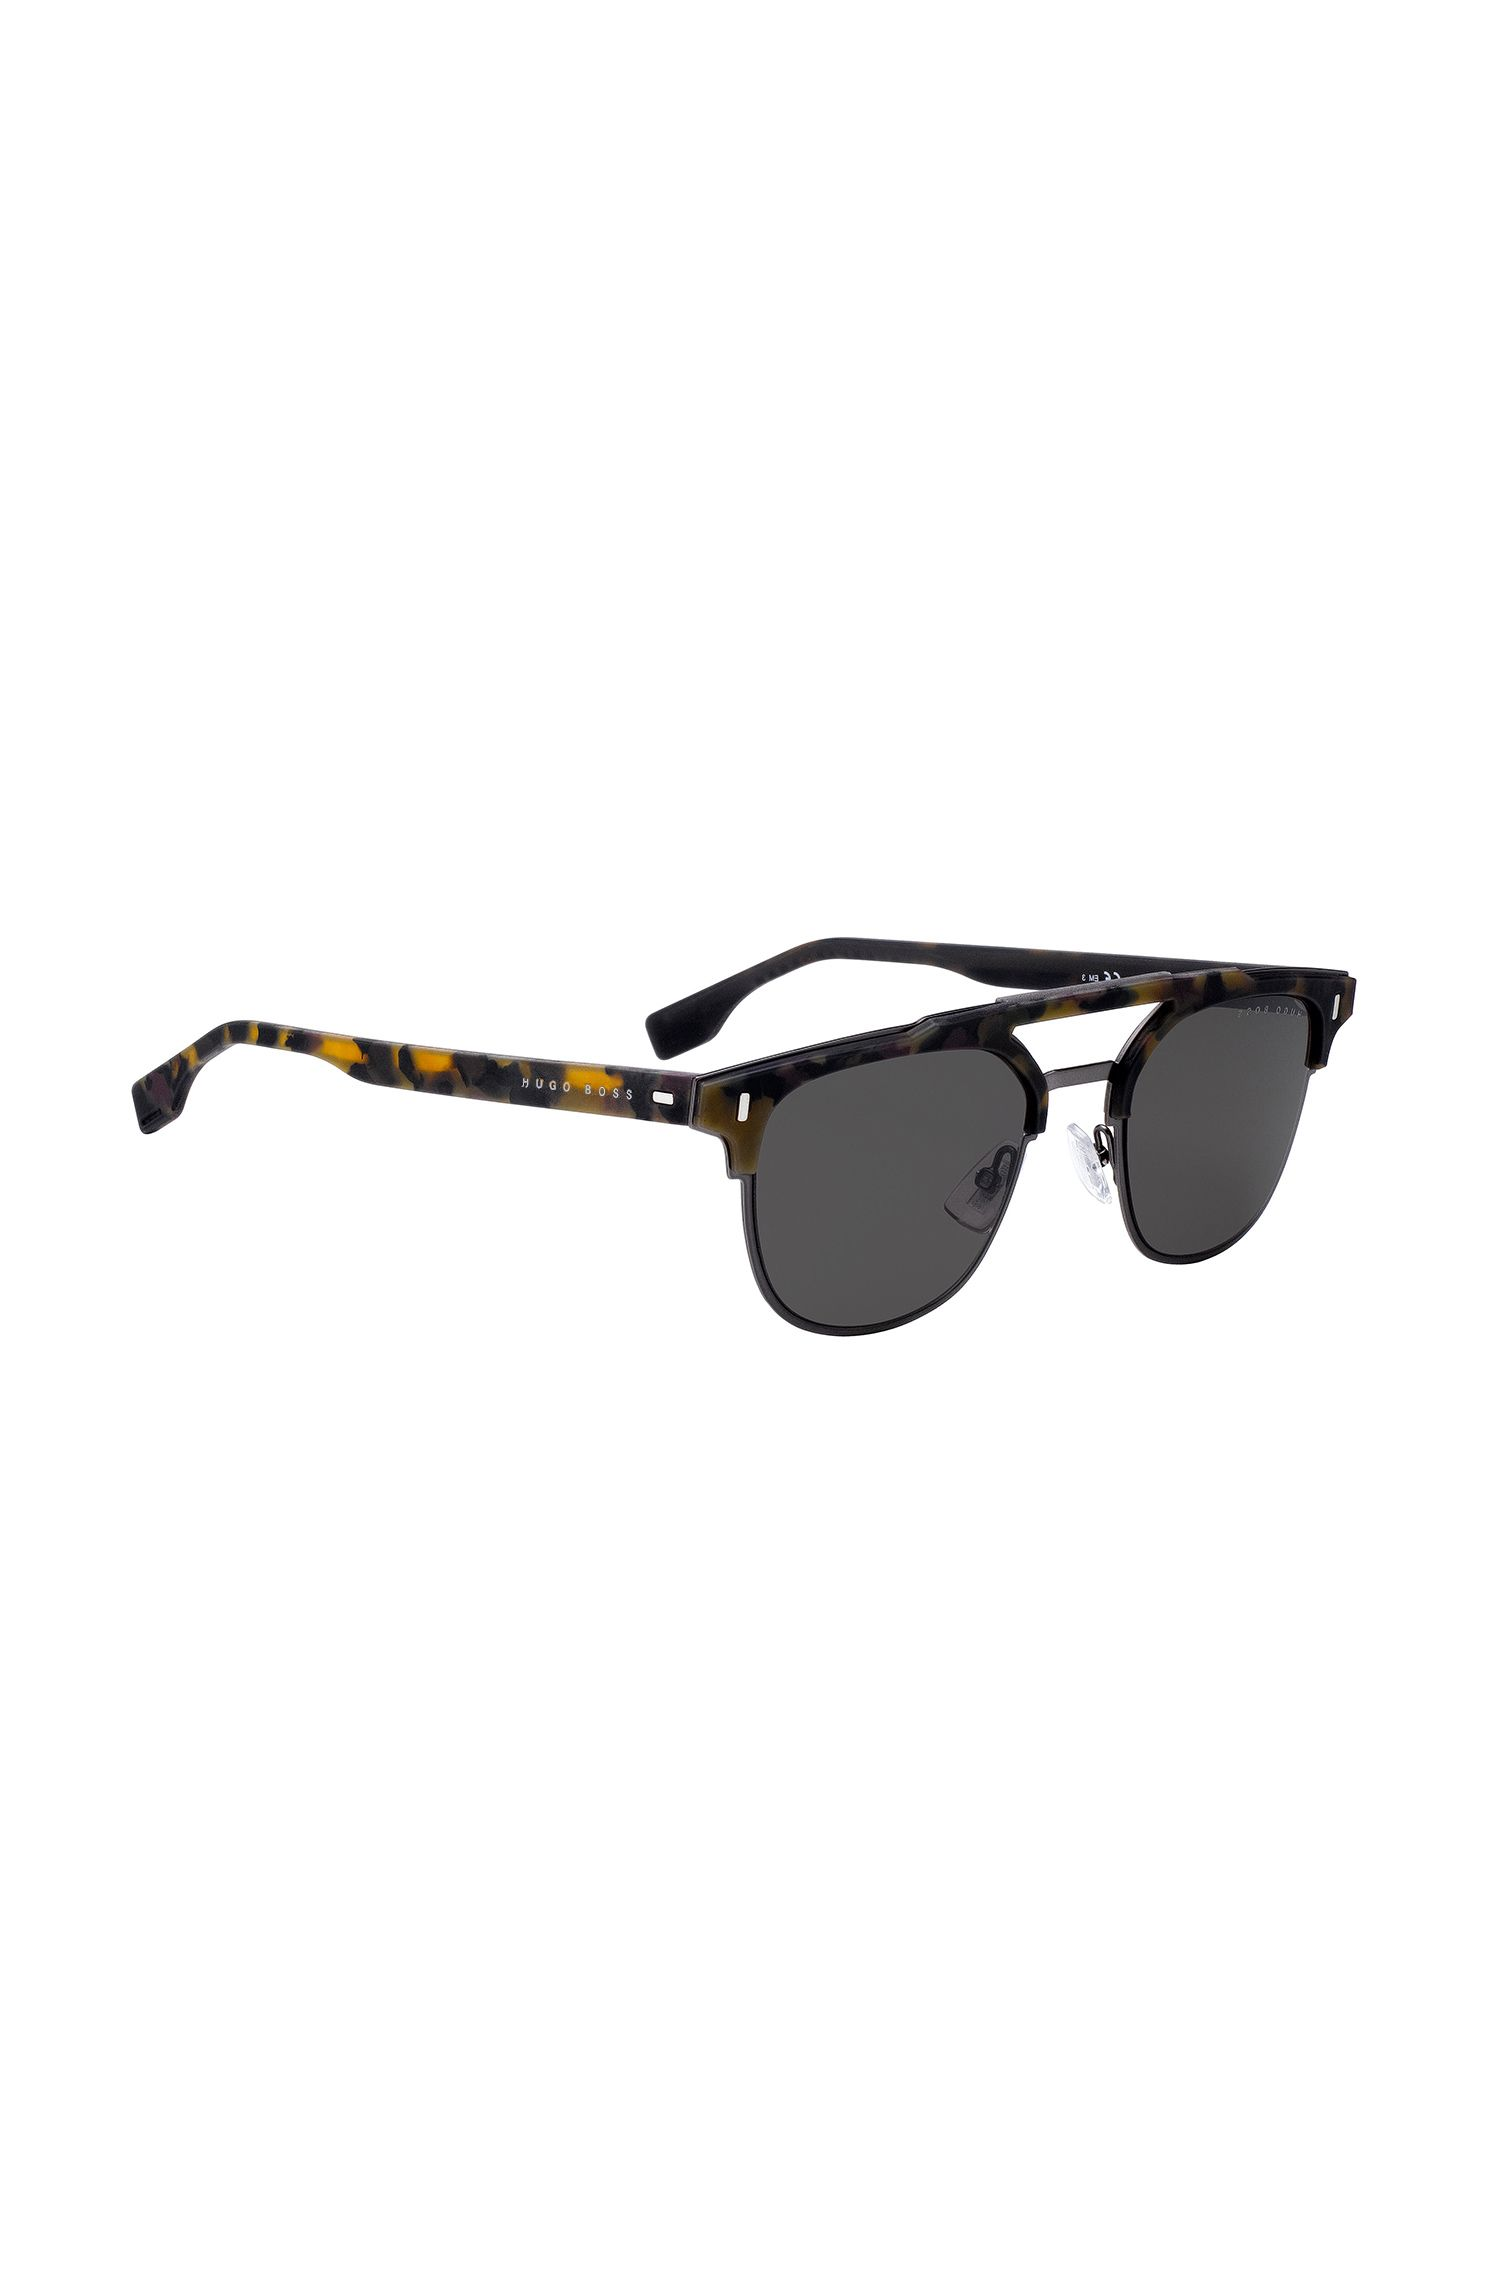 Rubberised-Havana sunglasses with riveted hinges, Assorted-Pre-Pack